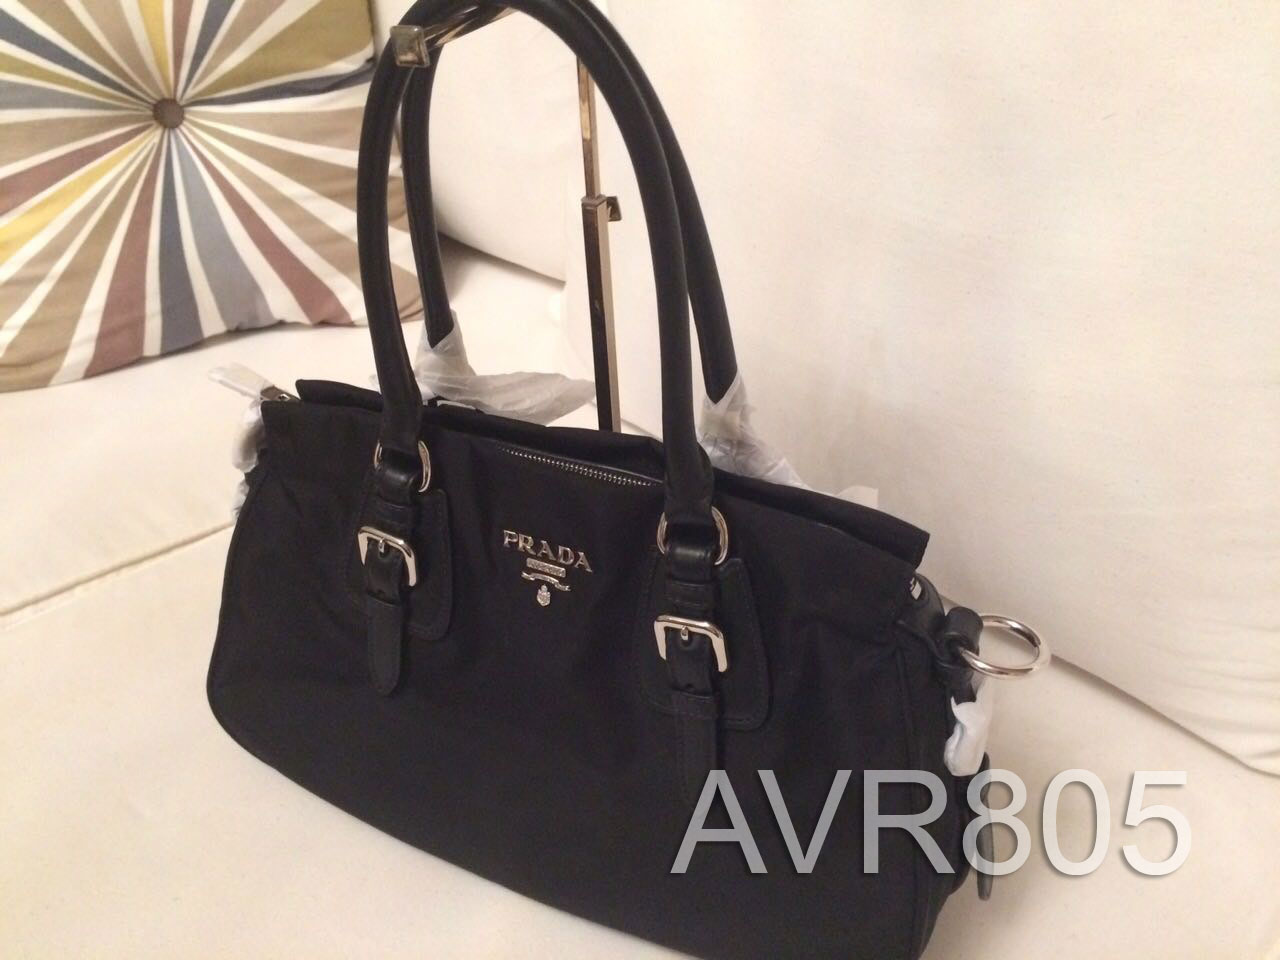 b4f3add54fde ... bauletto 71285 fb2d6; italy prada 1ba021 nero black tessuto soft calf  top handle shopping tote brand new dd4a3 ef754